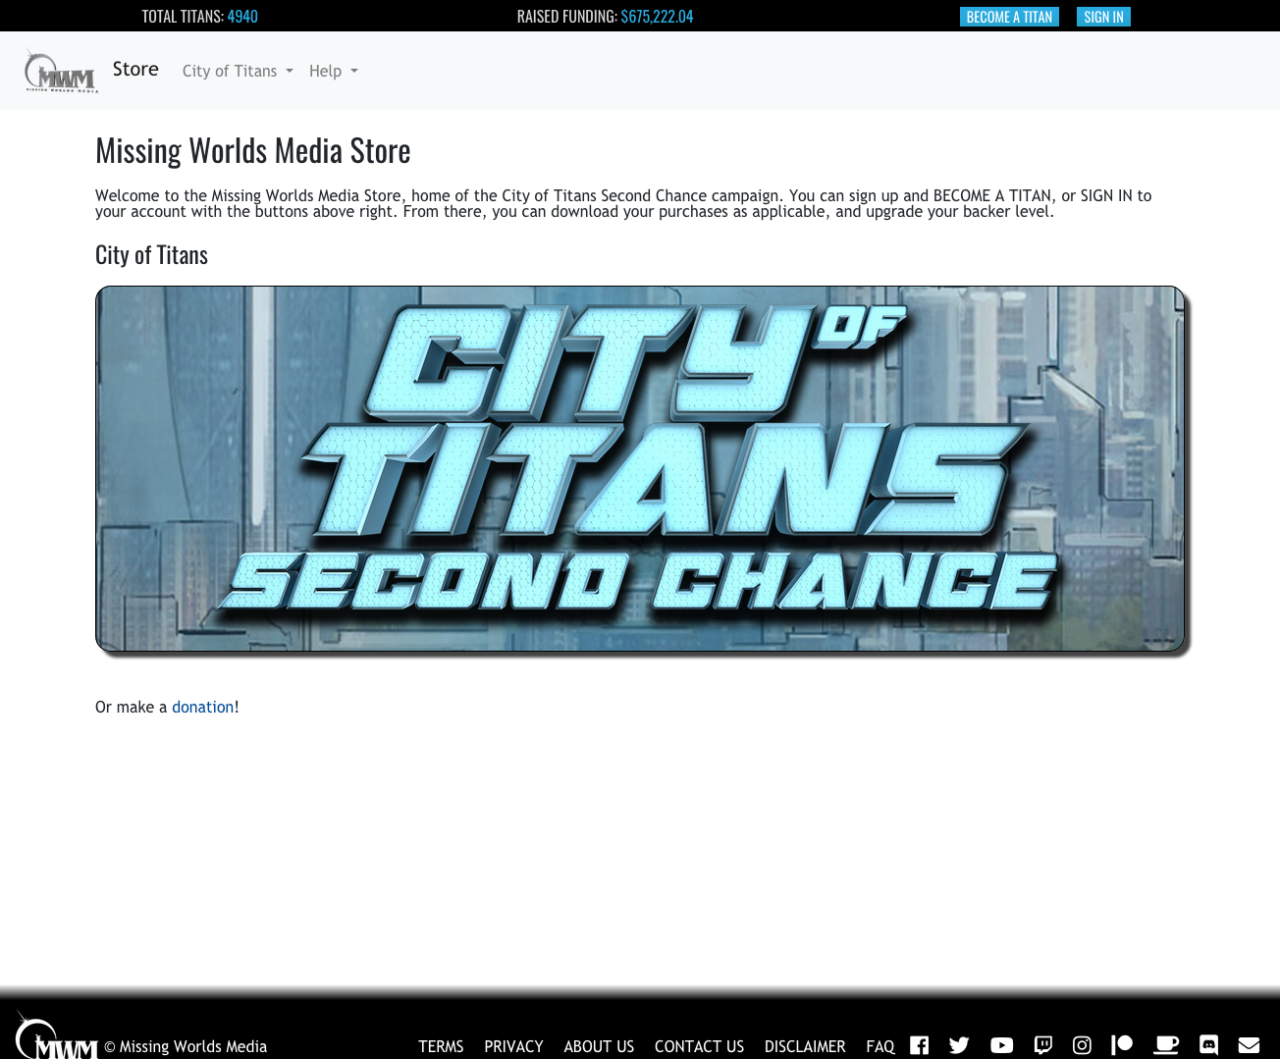 news-city-of-titans-Second-Chance-webstore home